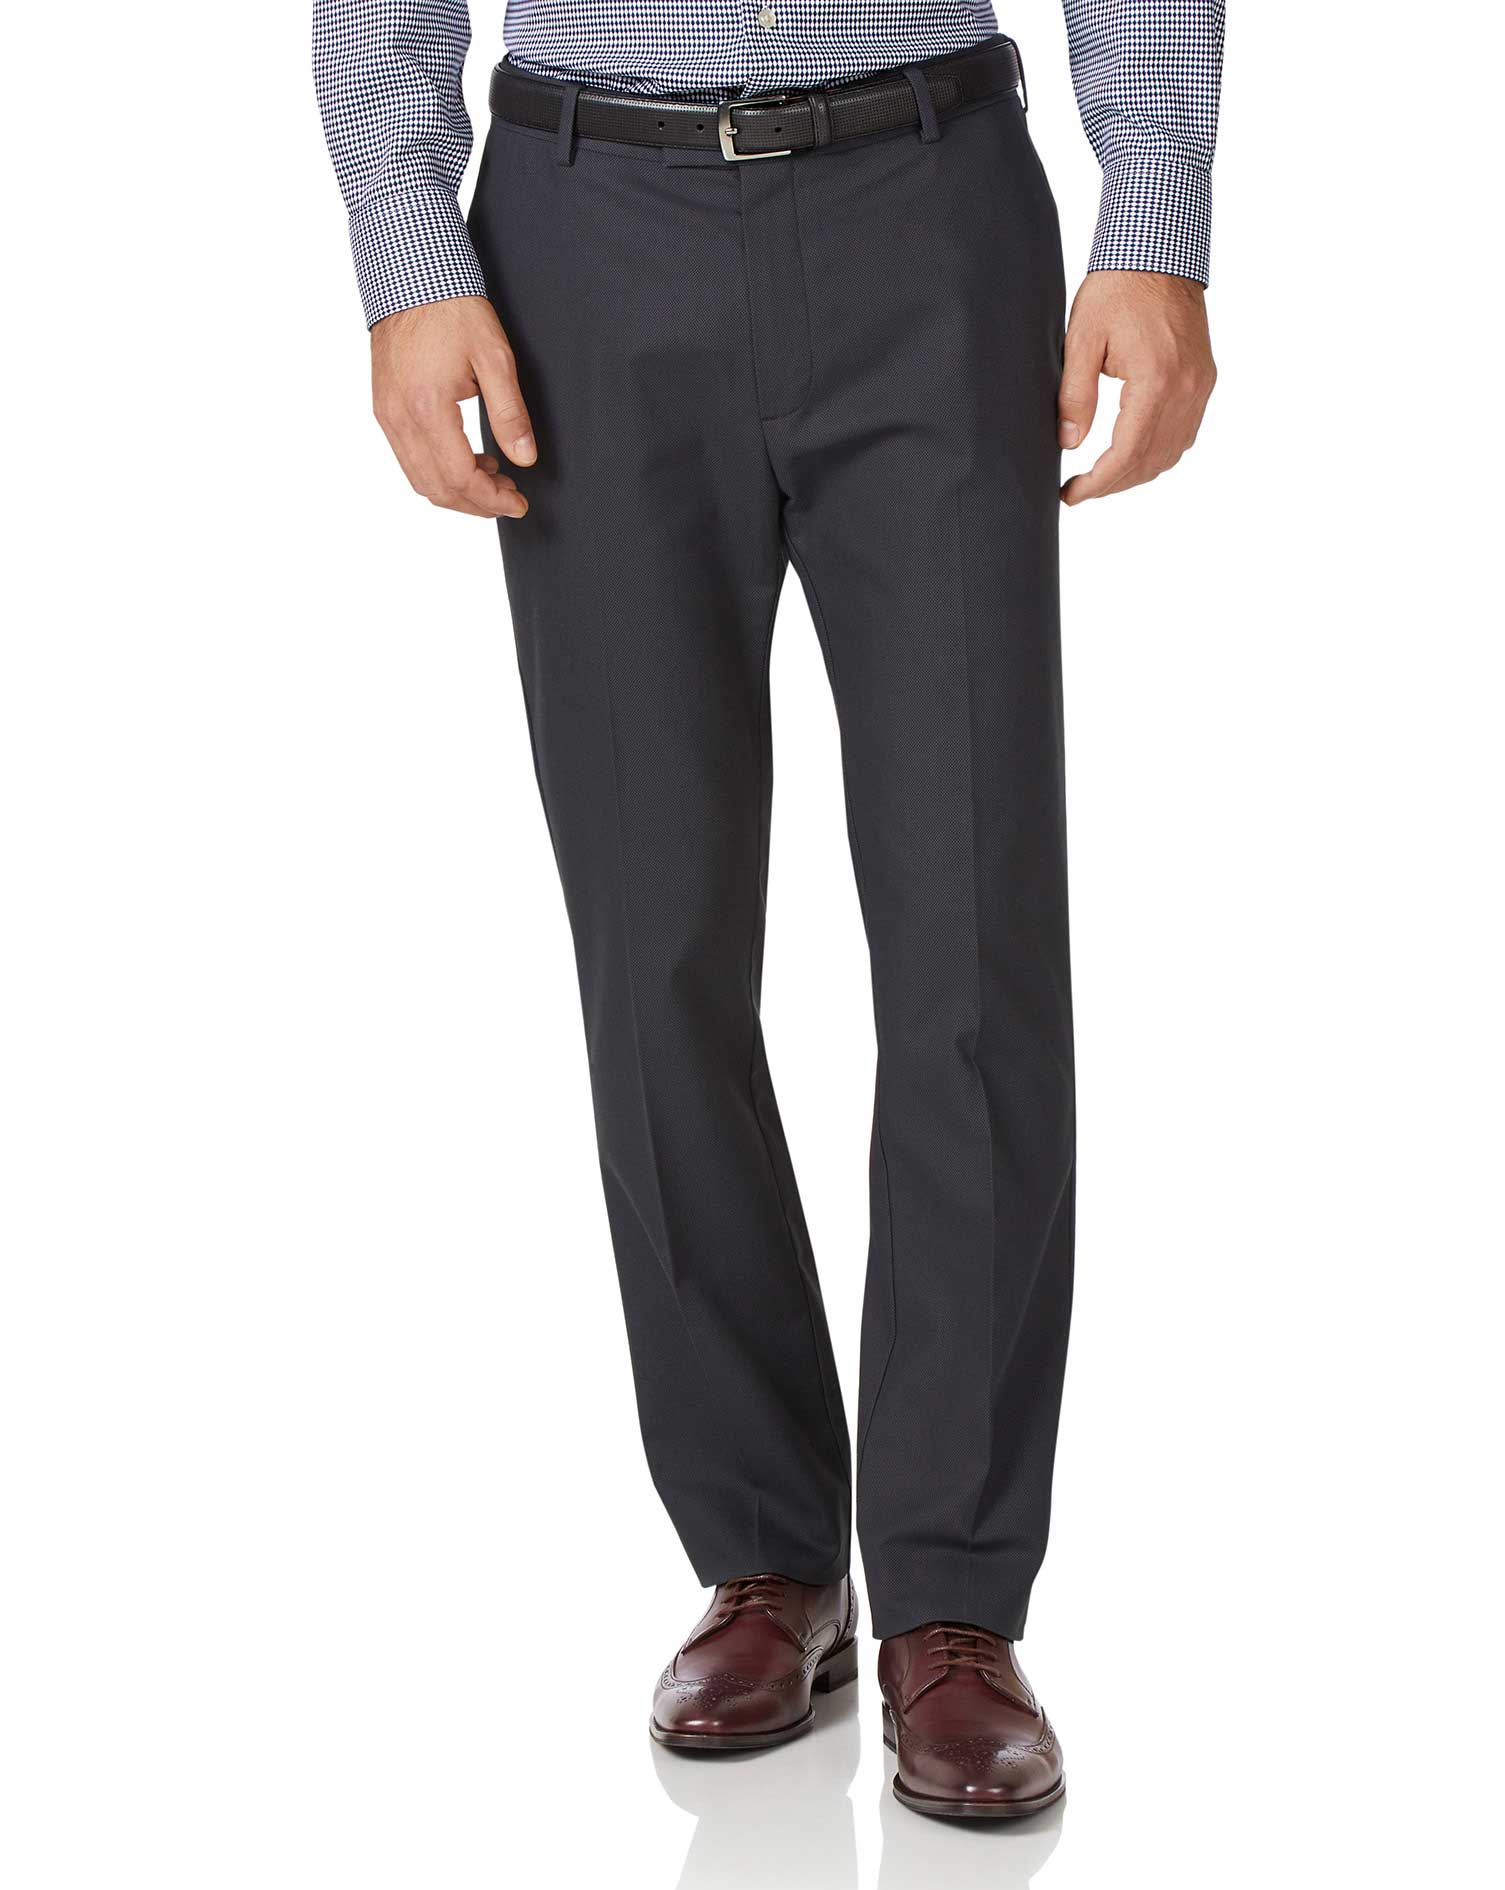 Charcoal Classic Fit Stretch Non-Iron Trousers Size W42 L34 by Charles Tyrwhitt